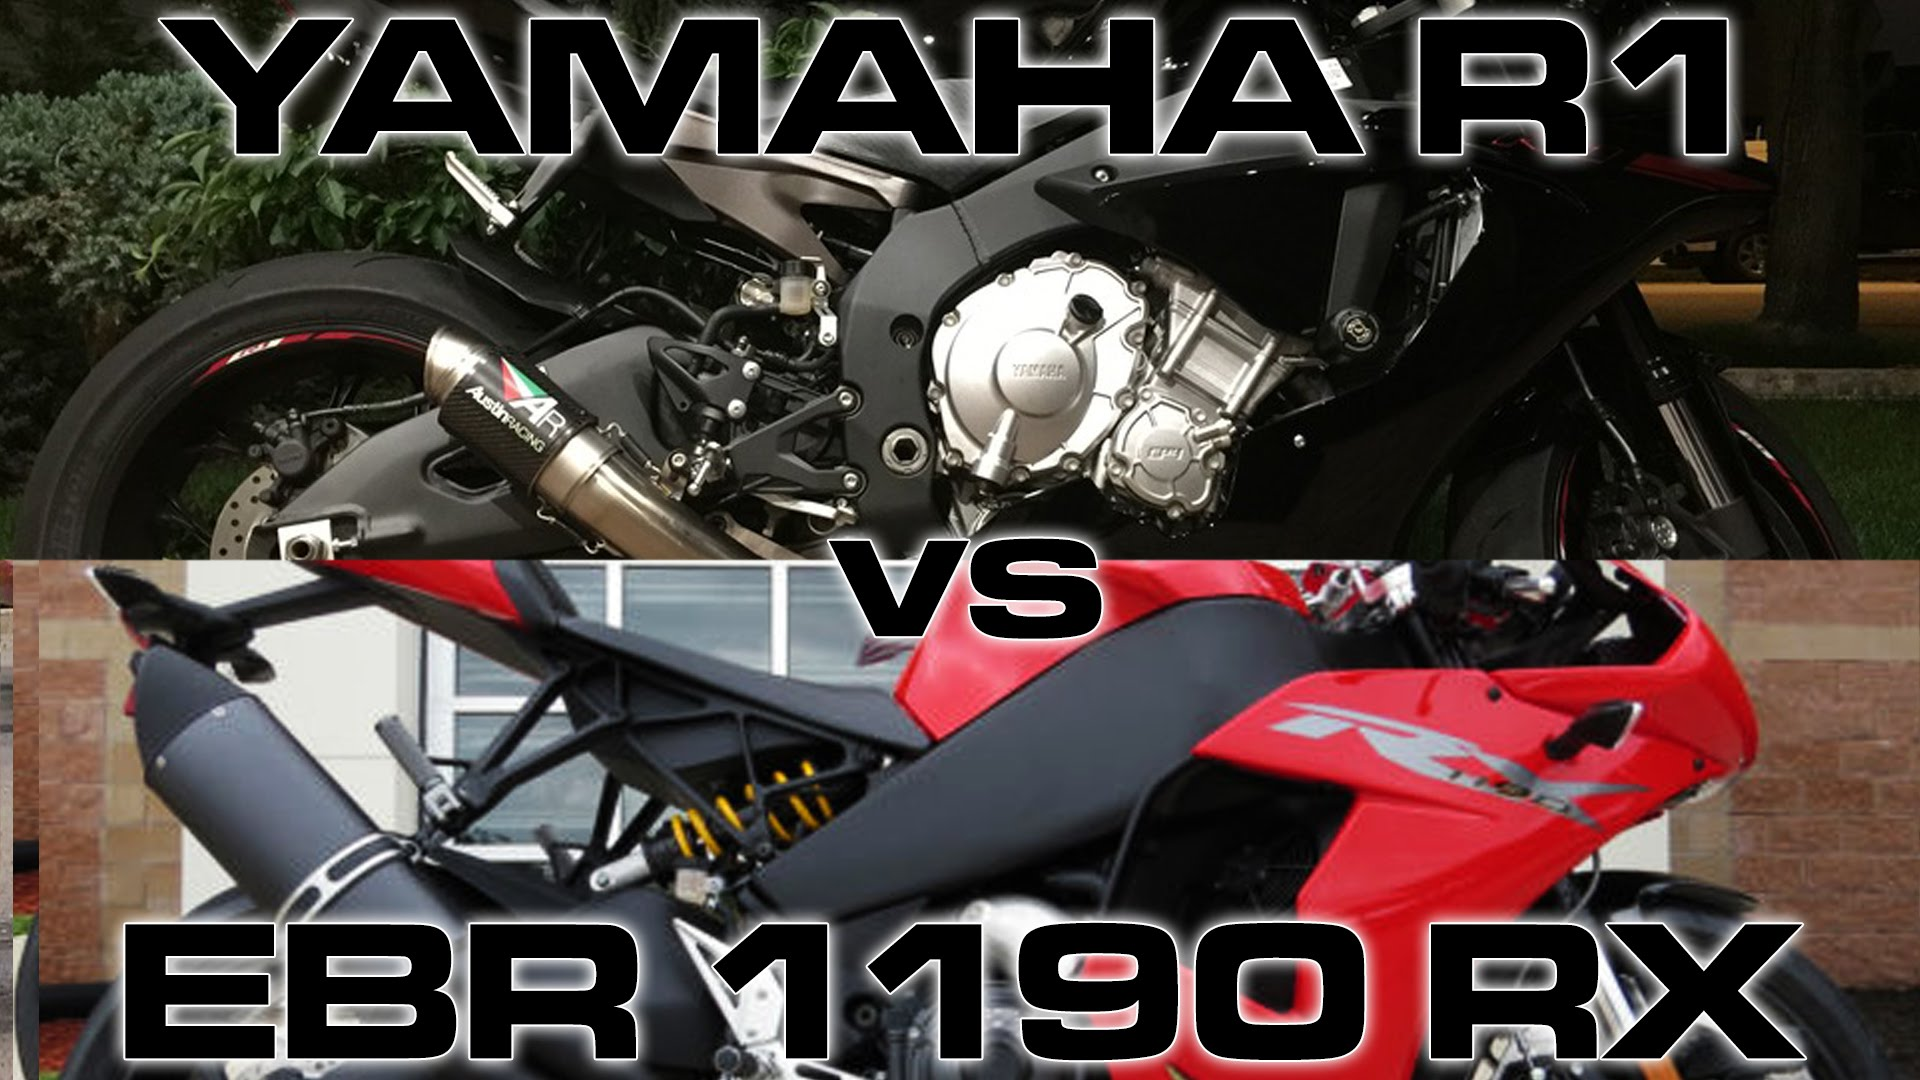 Clash Of The Superbikes: '15 Yamaha R1 And '14 EBR 1190RX Duel On The Streets